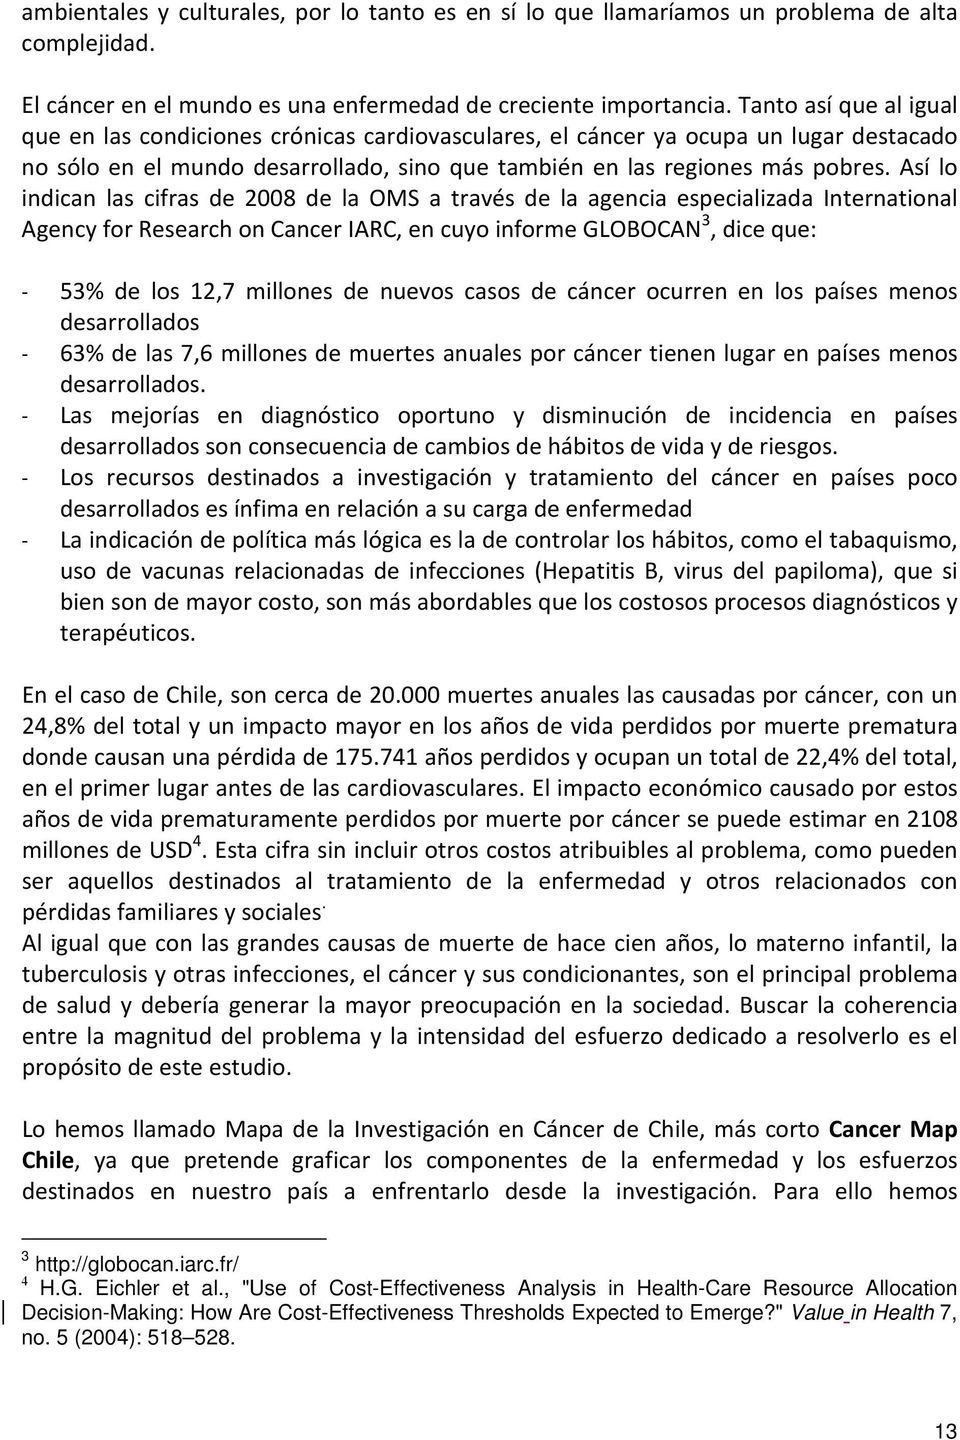 Así lo indican las cifras de 2008 de la OMS a través de la agencia especializada International Agency for Research on Cancer IARC, en cuyo informe GLOBOCAN 3, dice que: - 53% de los 12,7 millones de